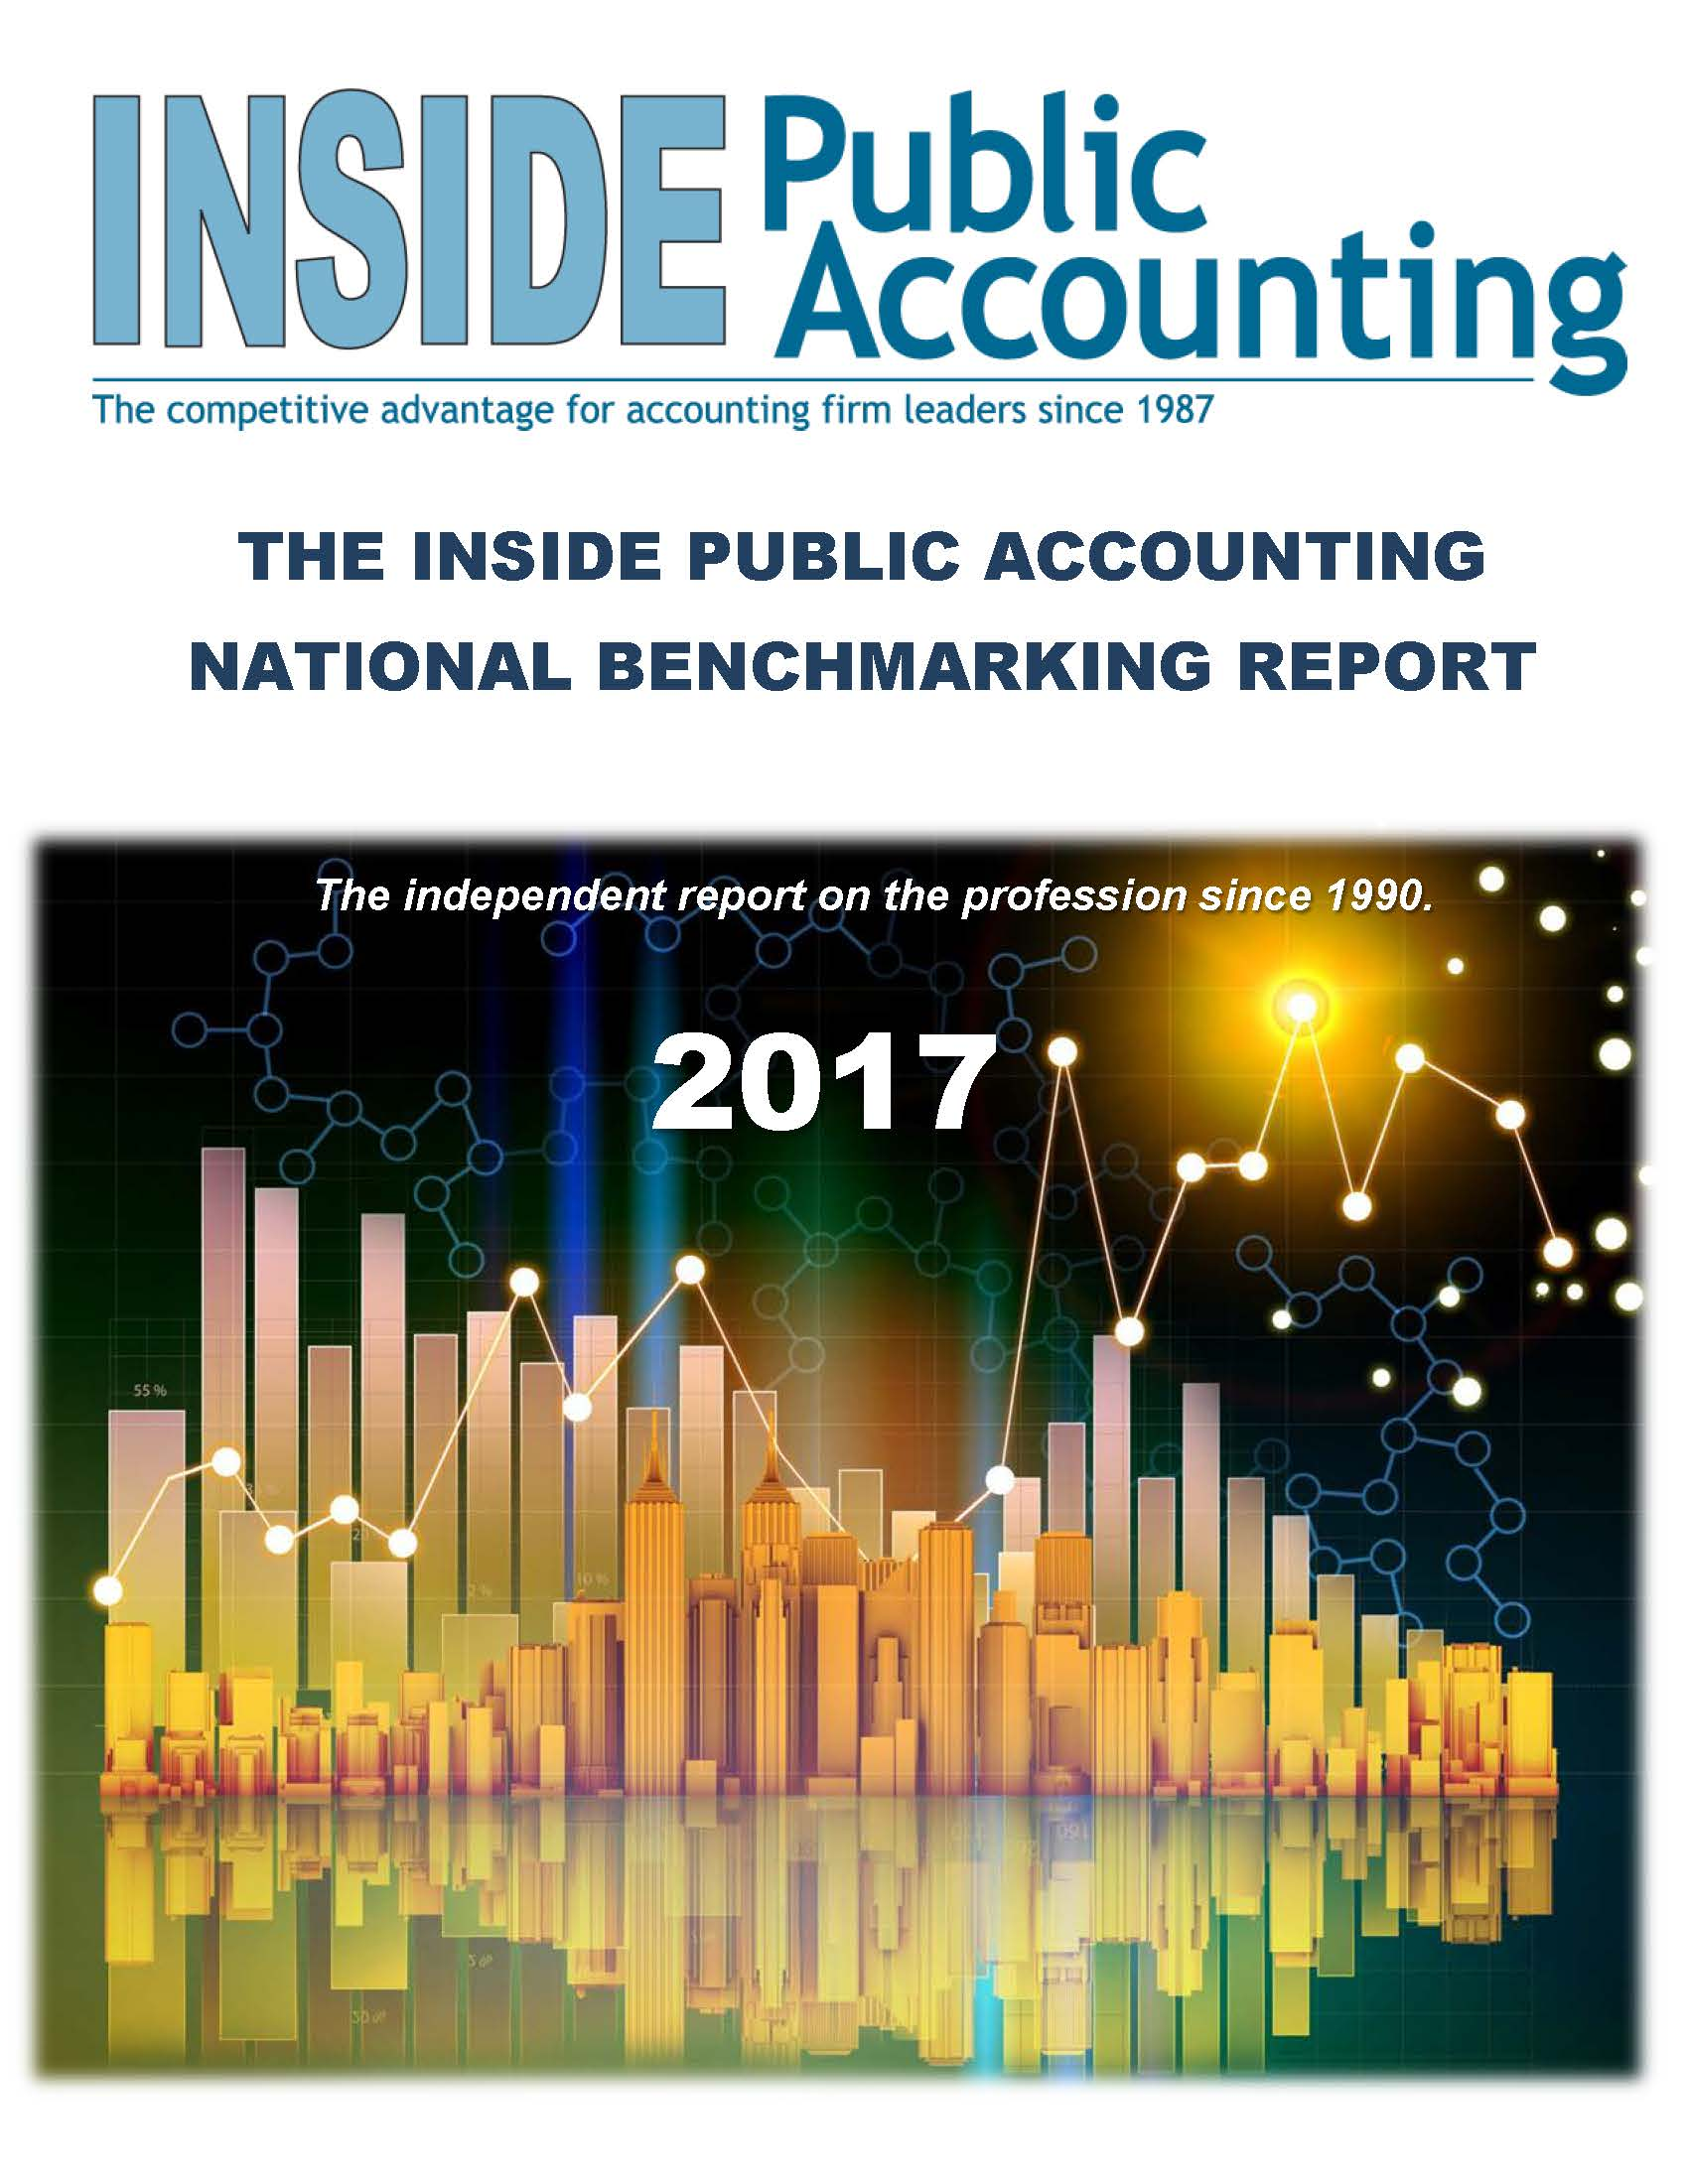 INSIDE Public Accounting Releases 2017 National Benchmarking Report